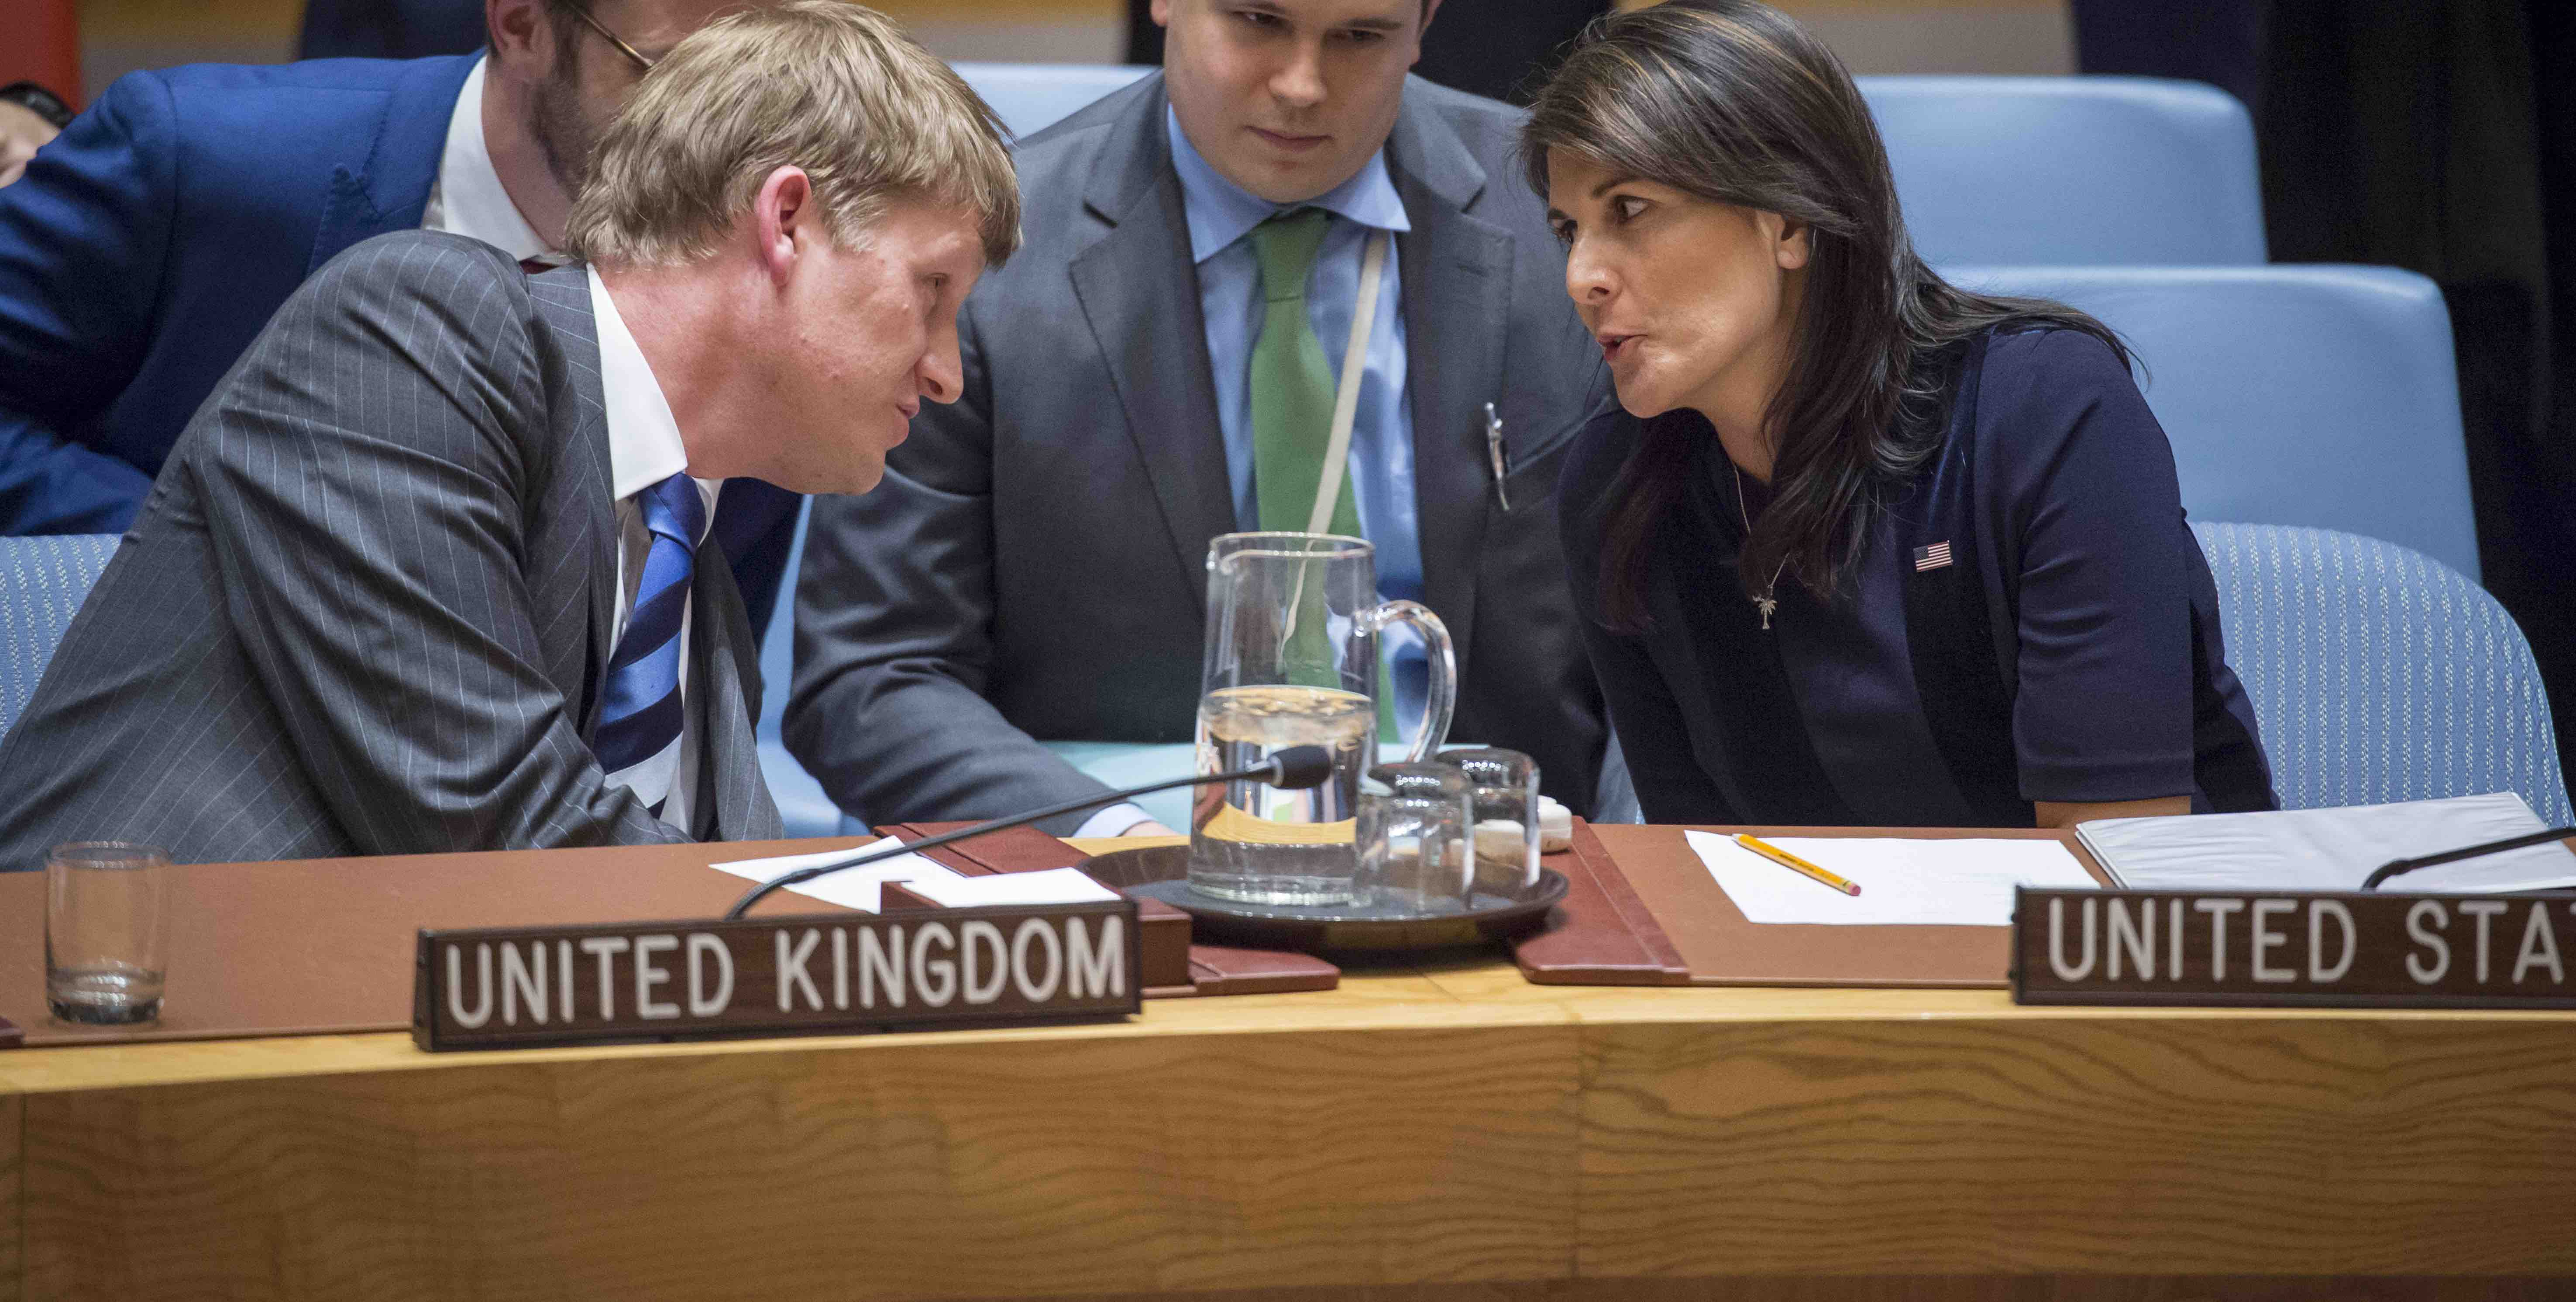 The UN Security Council hears UK allegations of a Russian nerve agent attack in Britain (UN Photo)